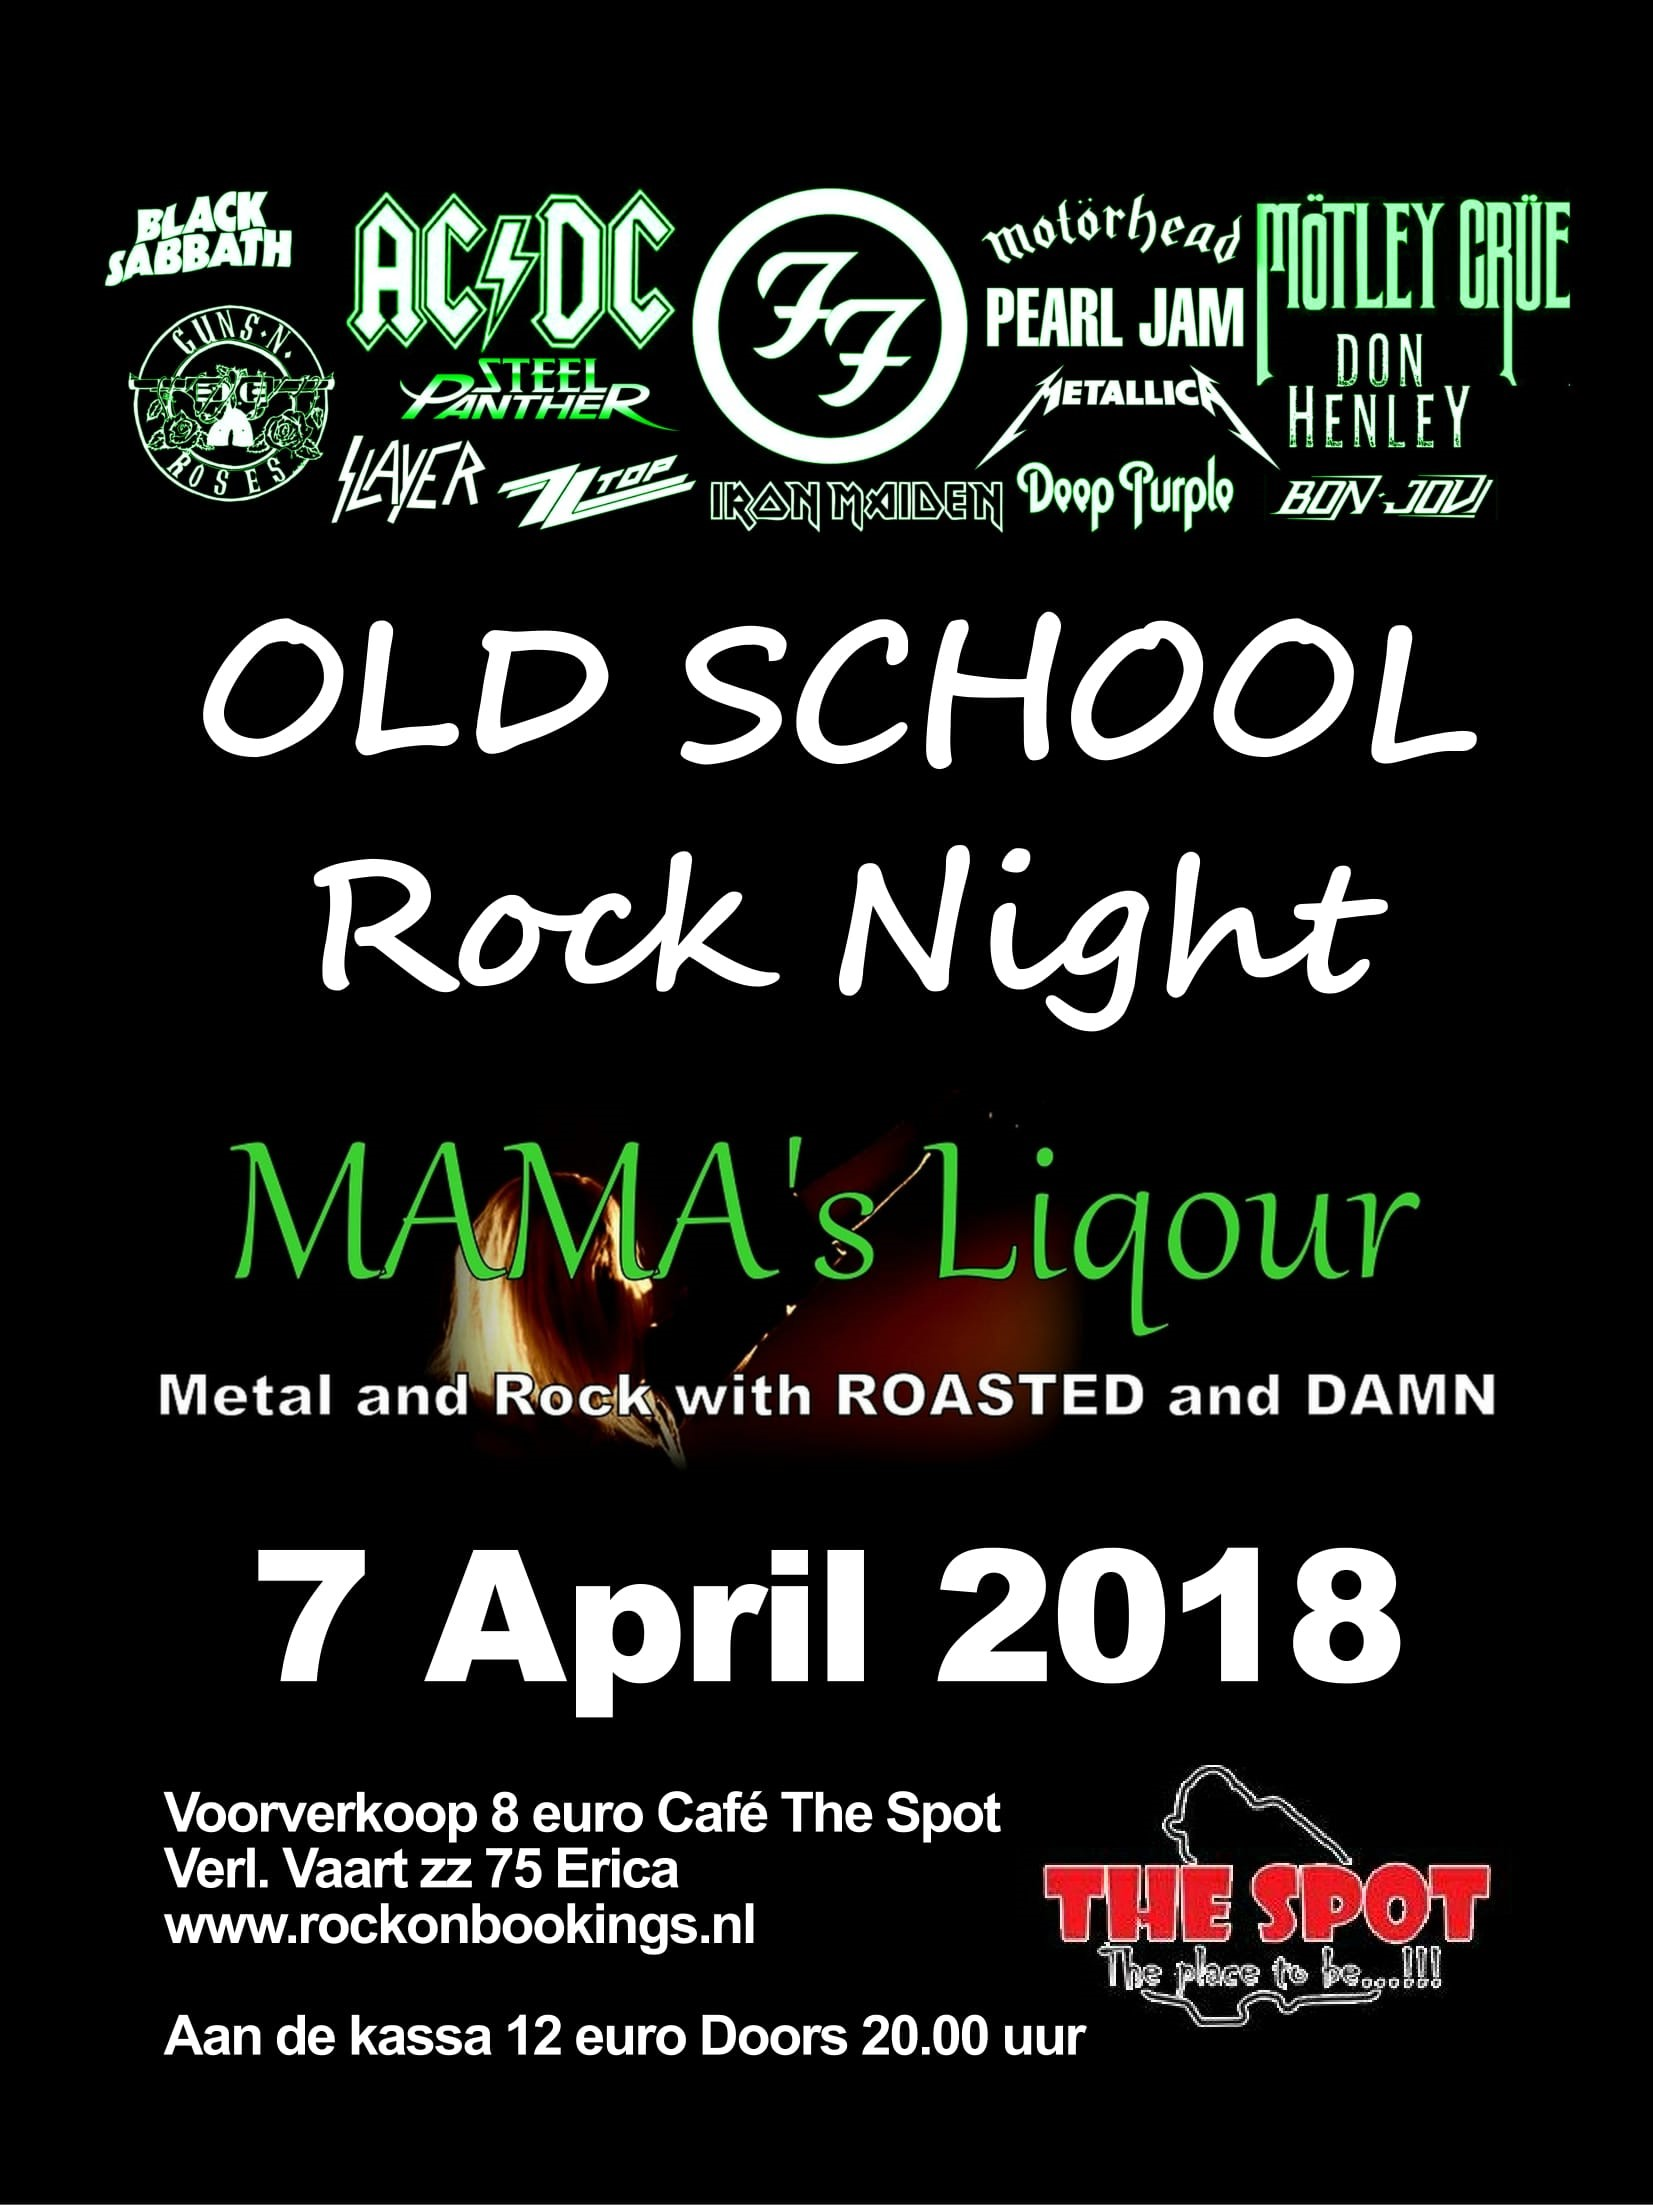 Uitgaansagenda Erica: Old School Rock Night